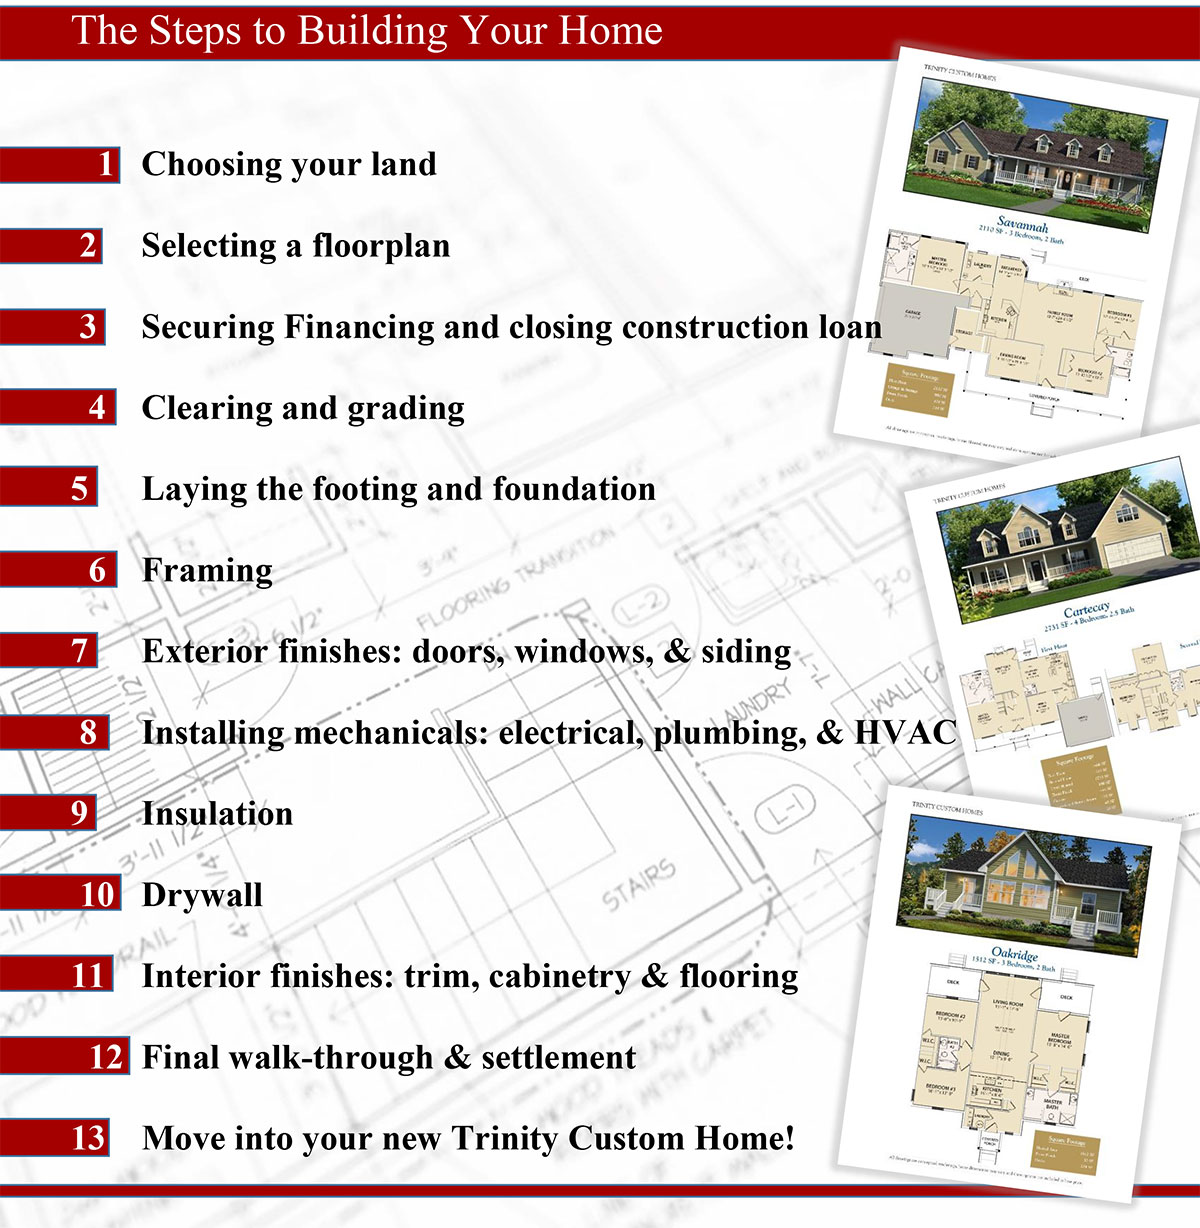 the-steps-to-building-your-home